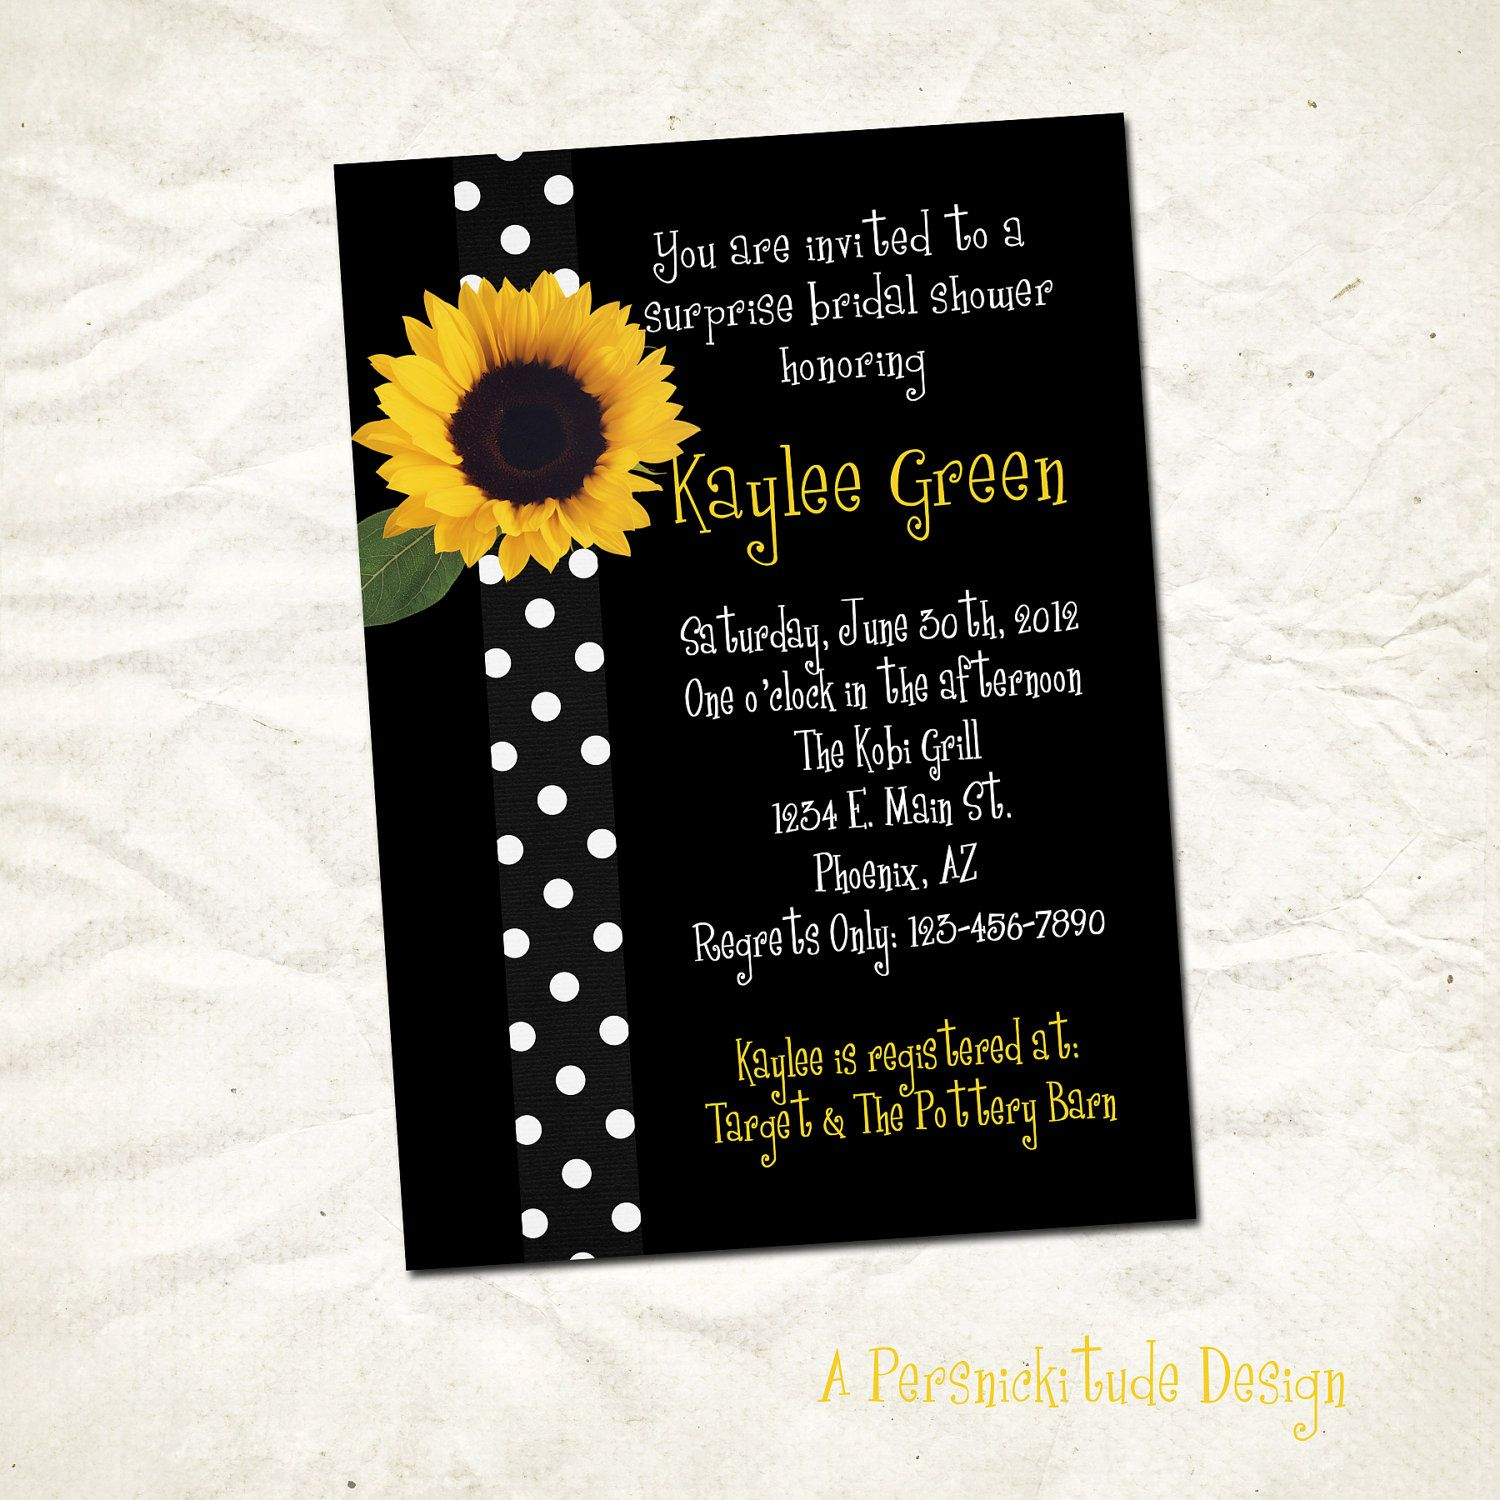 Sunflower bridal shower invitation print yourself by persnickitude ...